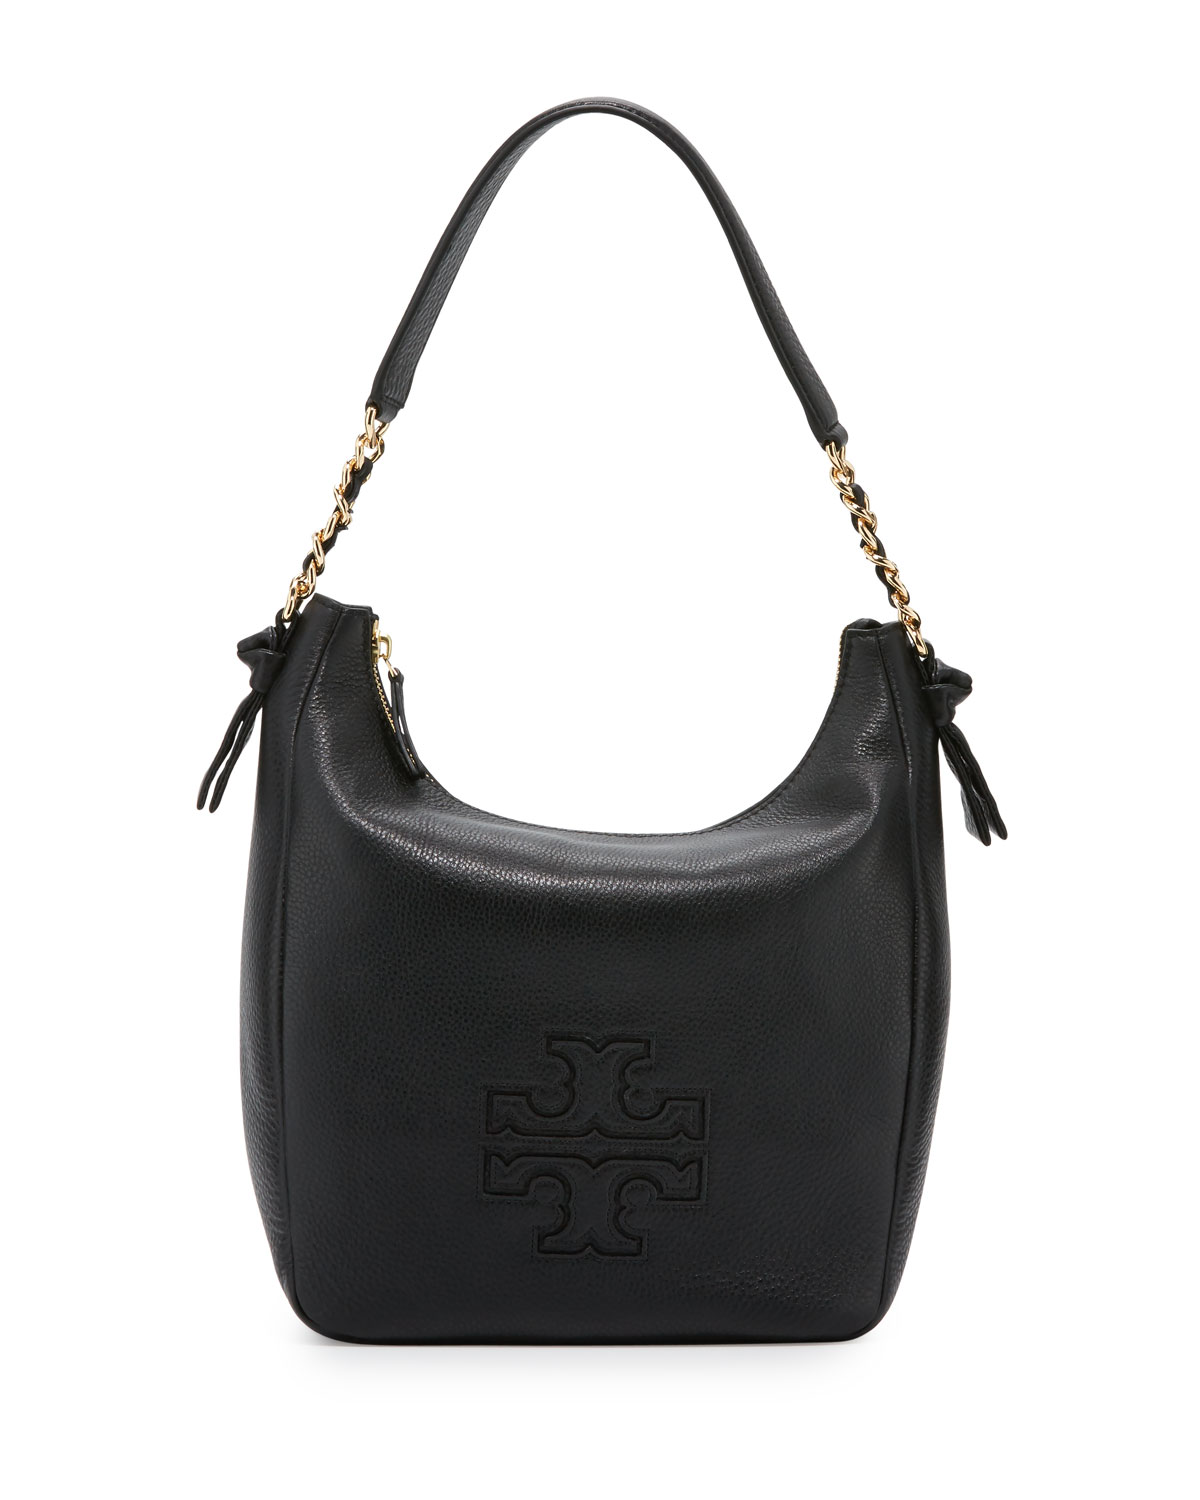 35a4a91d2dc9 Tory Burch Harper Leather Zip Hobo Bag